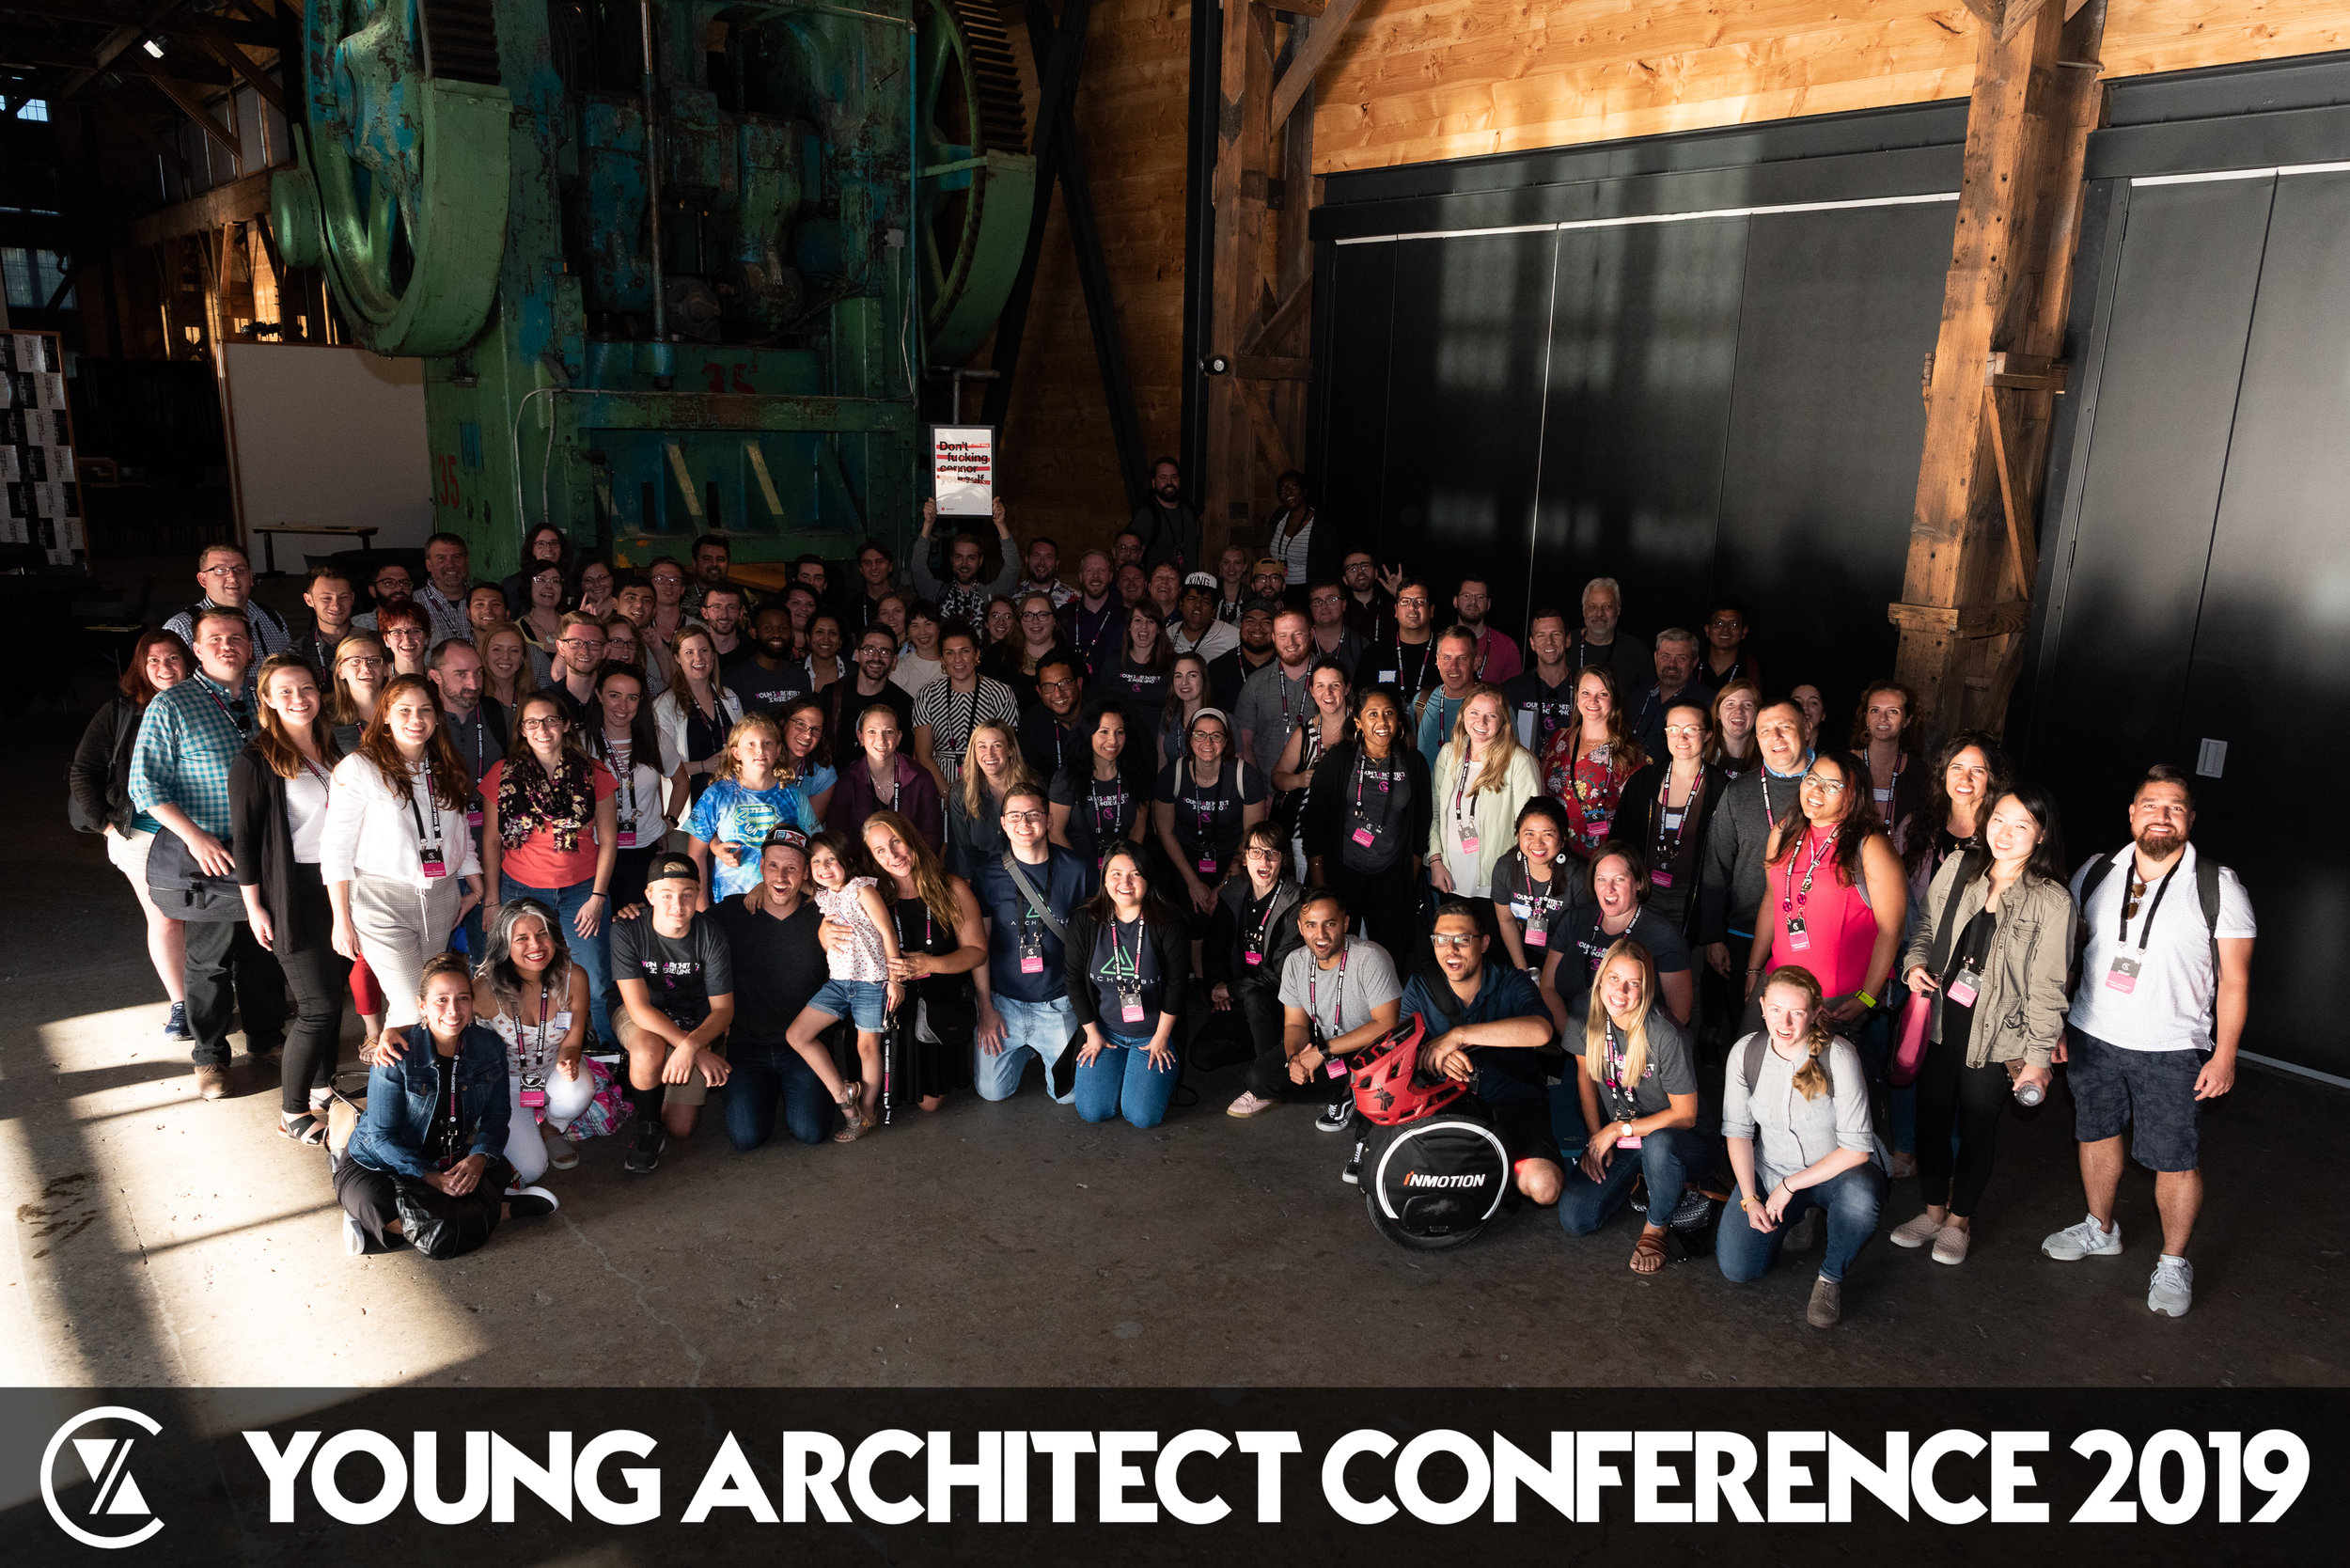 The Young Architect Conference 2019 Class Photo. Photo Credit:  @niou.photo